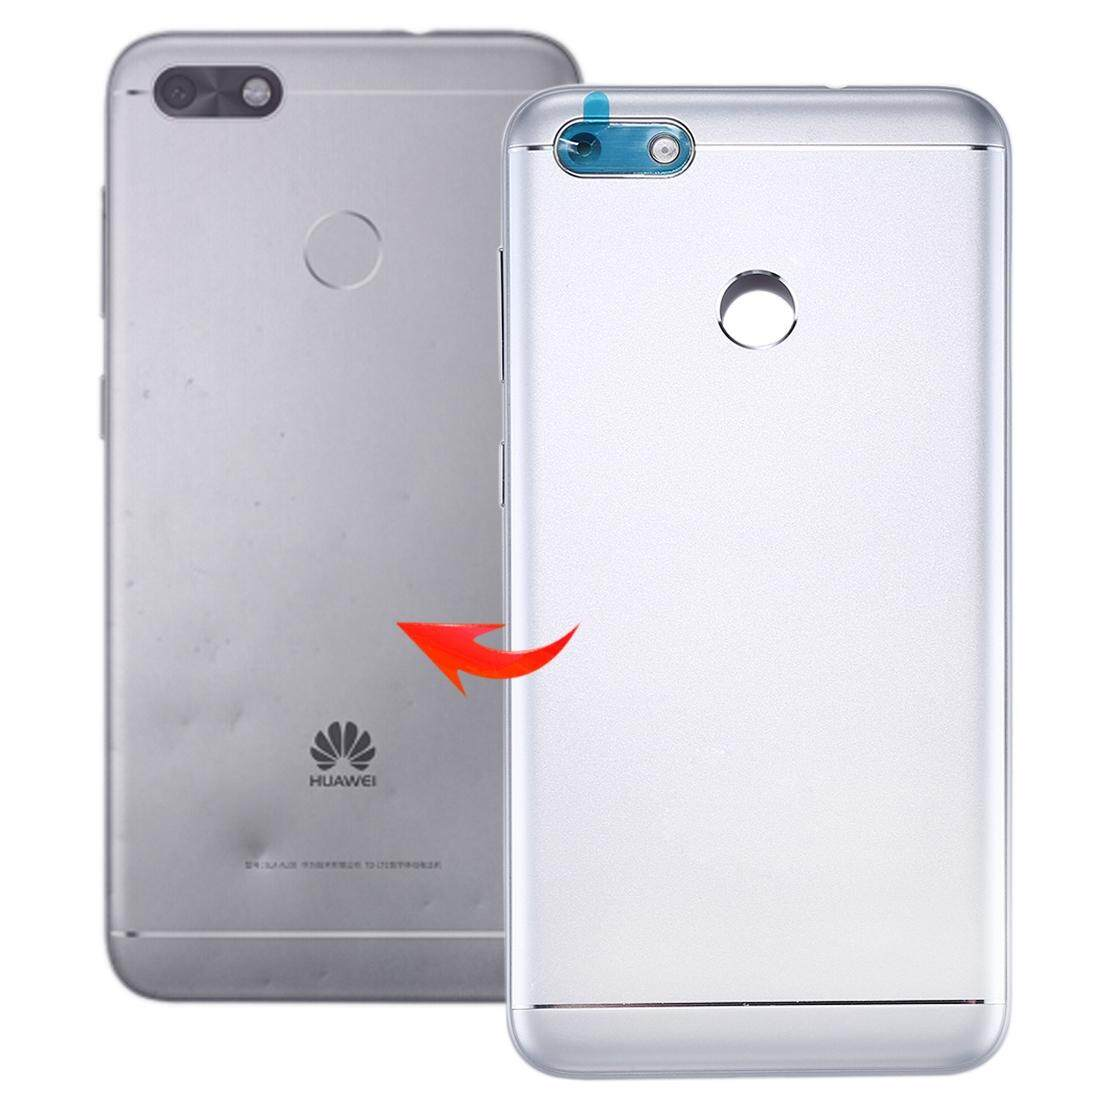 for Huawei Enjoy 7 / P9 Lite Mini / Y6 Pro (2017) Back Cover(Silver)